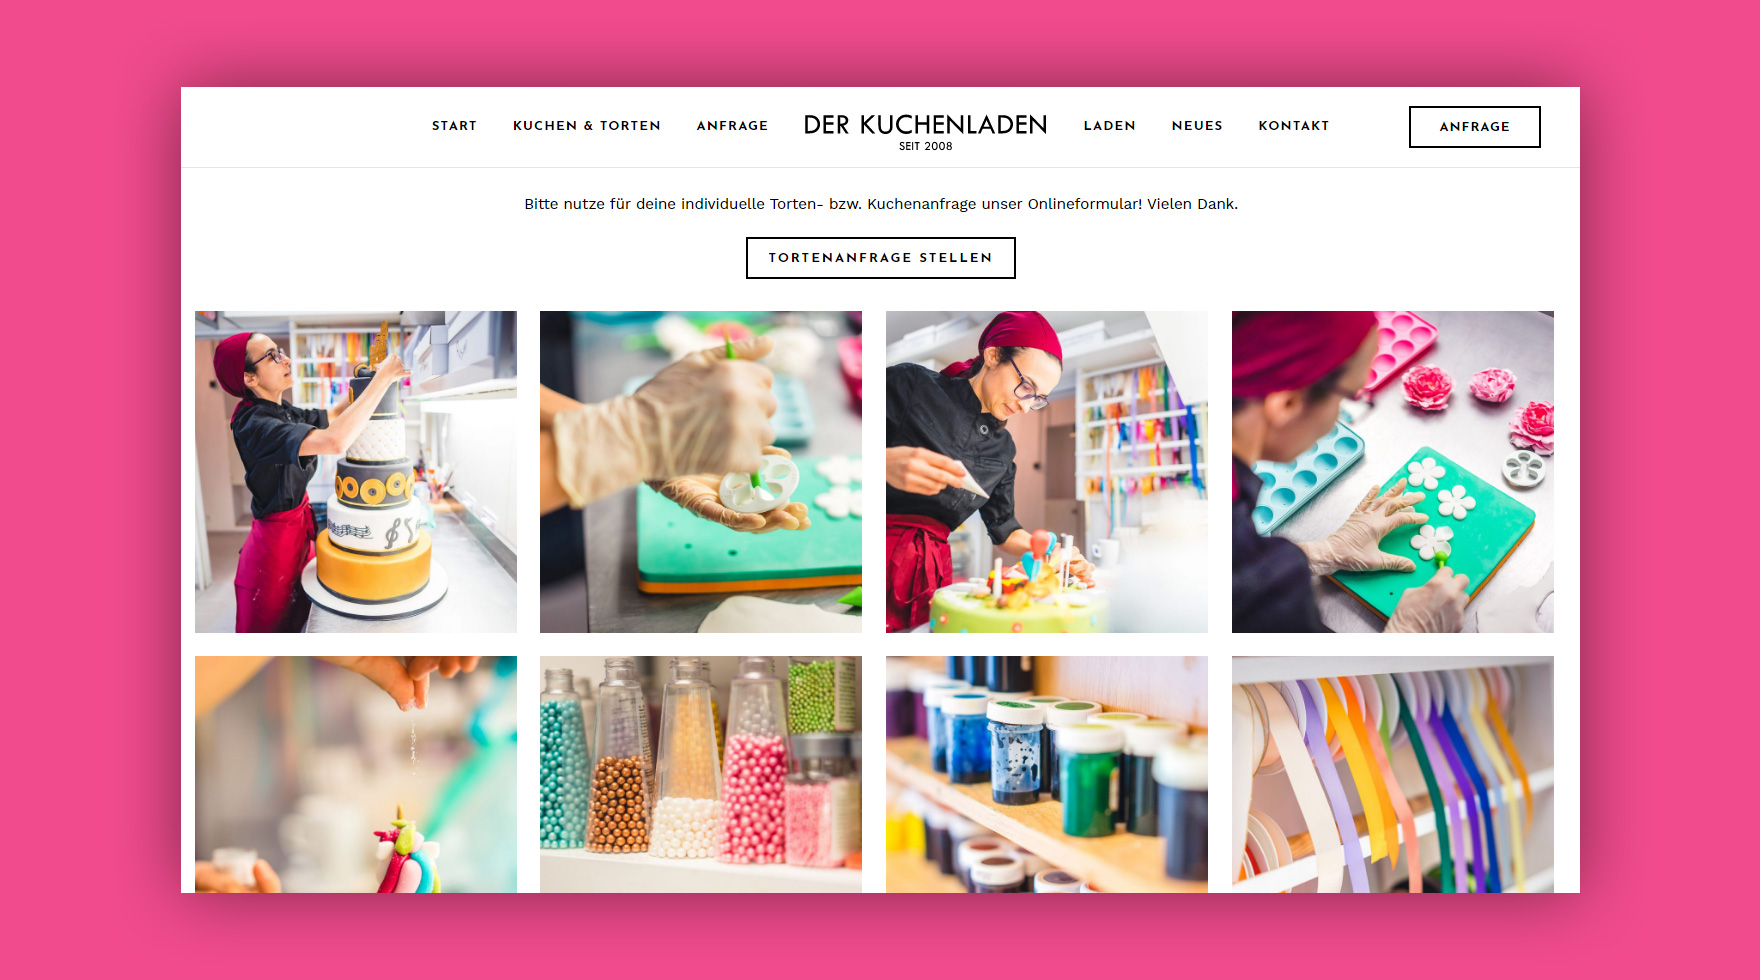 web-design-development-kuchenladen-berlin-agentur